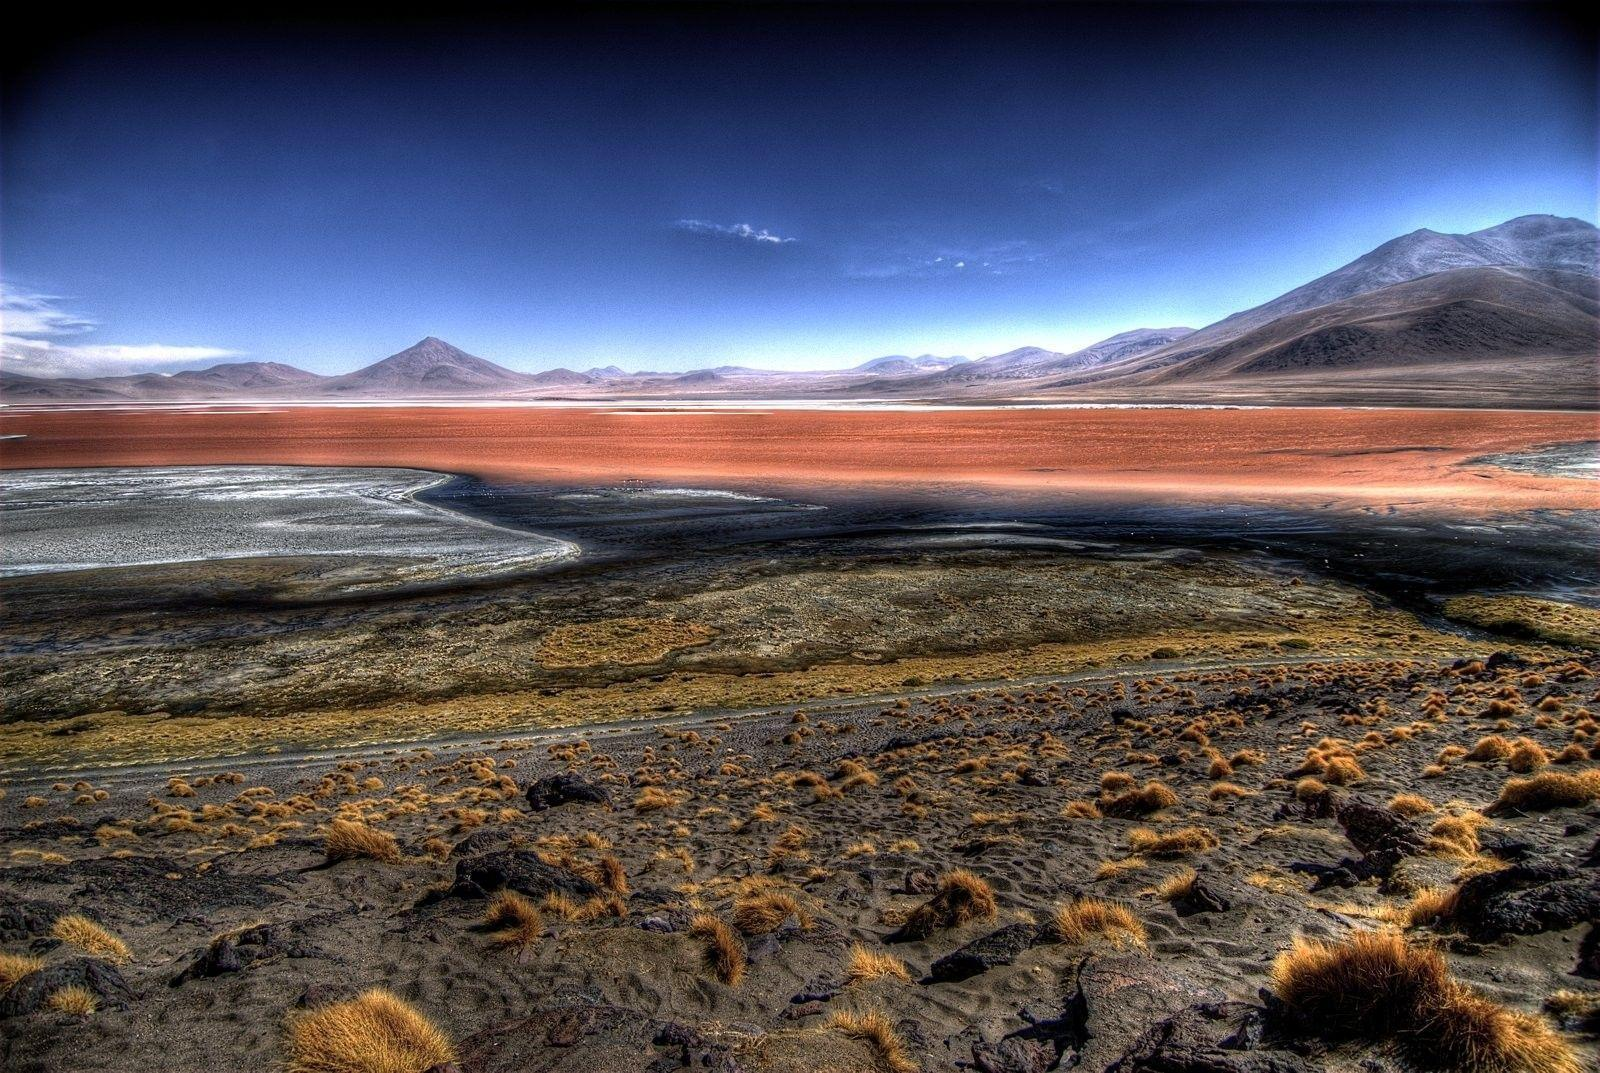 Bolivia Tag wallpapers: Swirls Dust Bolivia Landscapes Amazing